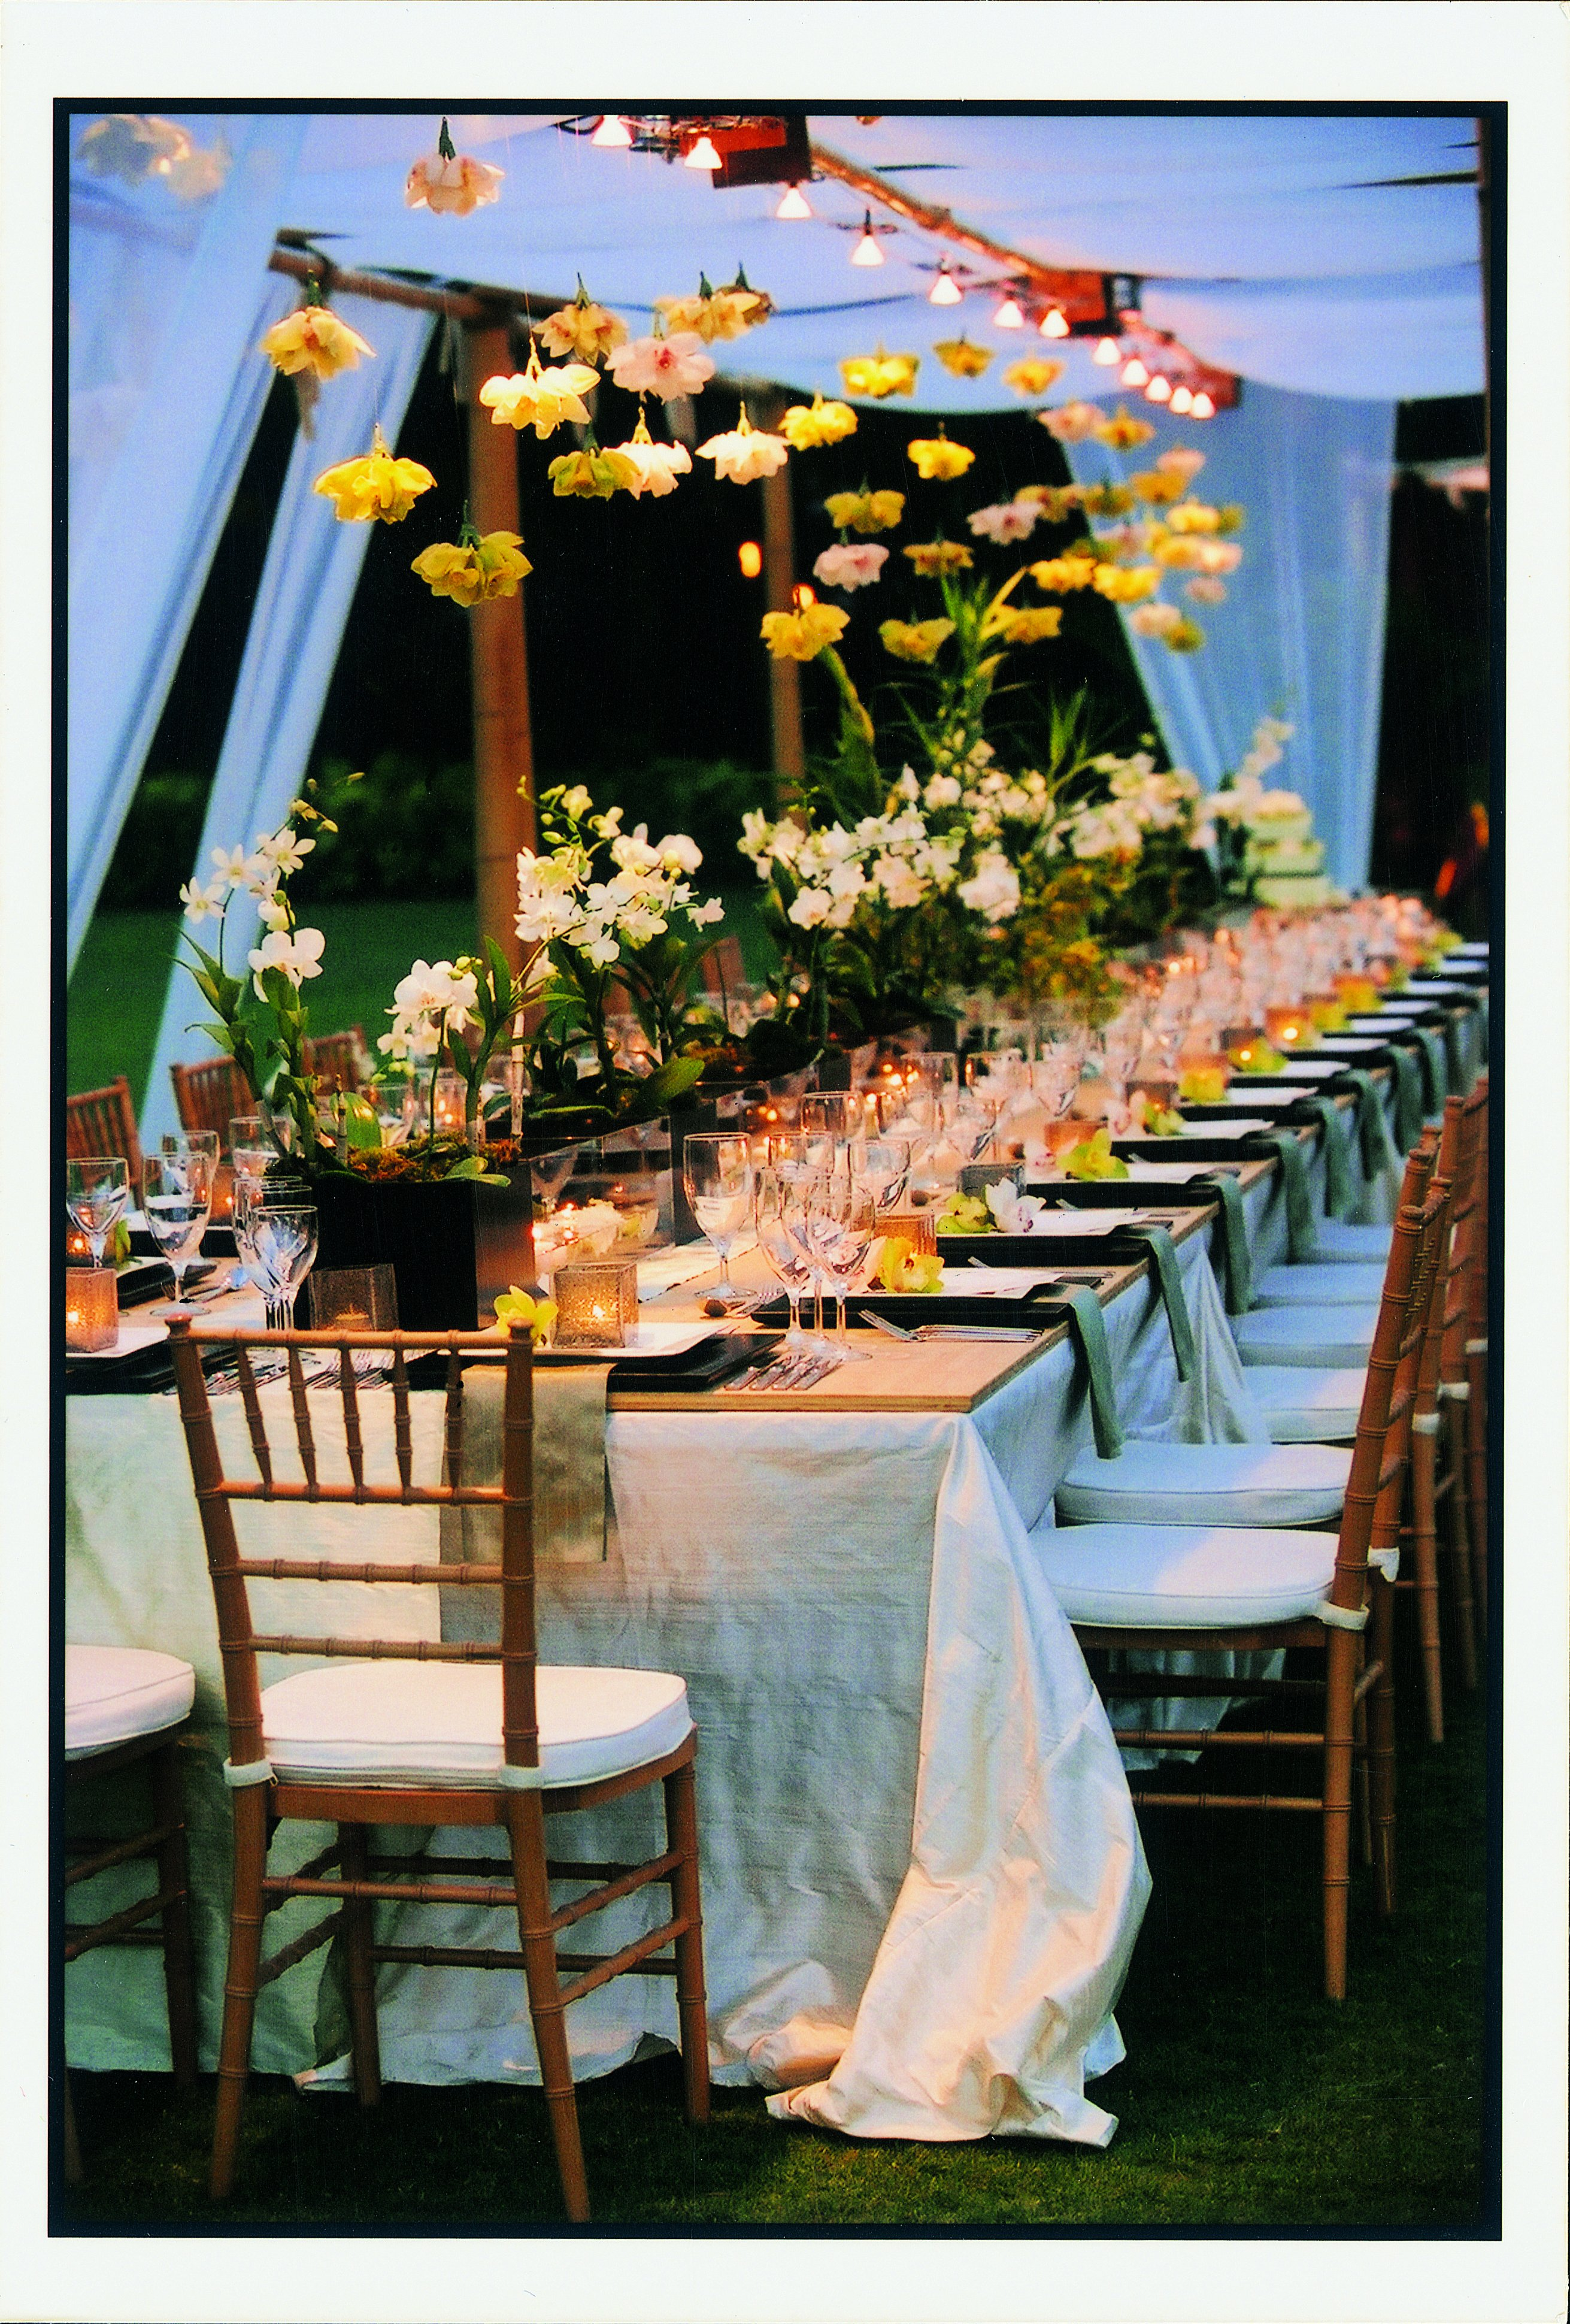 Outdoor wedding reception decorations interior design ideas for Wedding interior decoration images